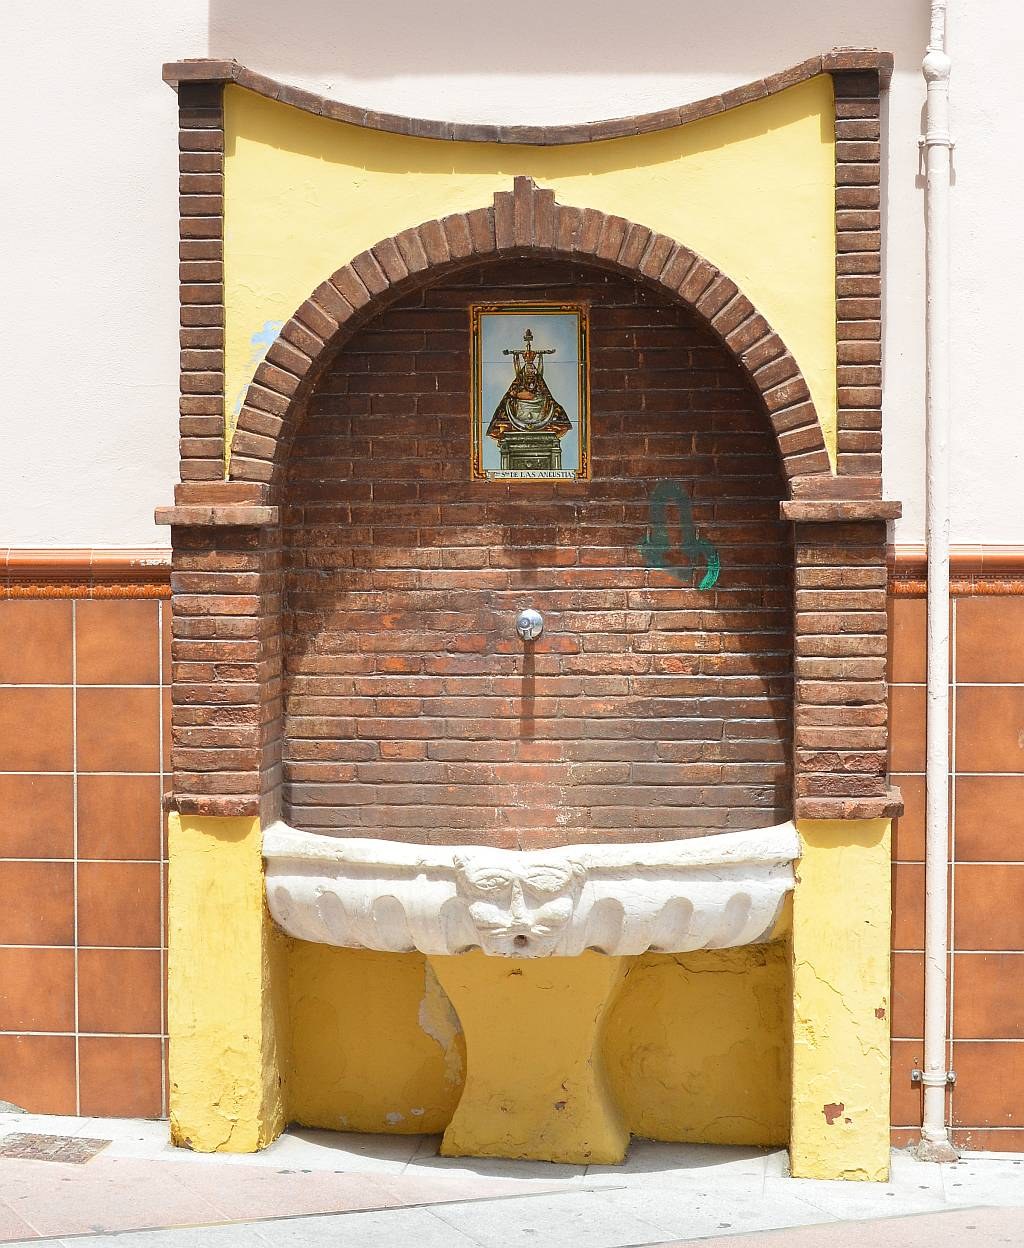 fountain, Nerja